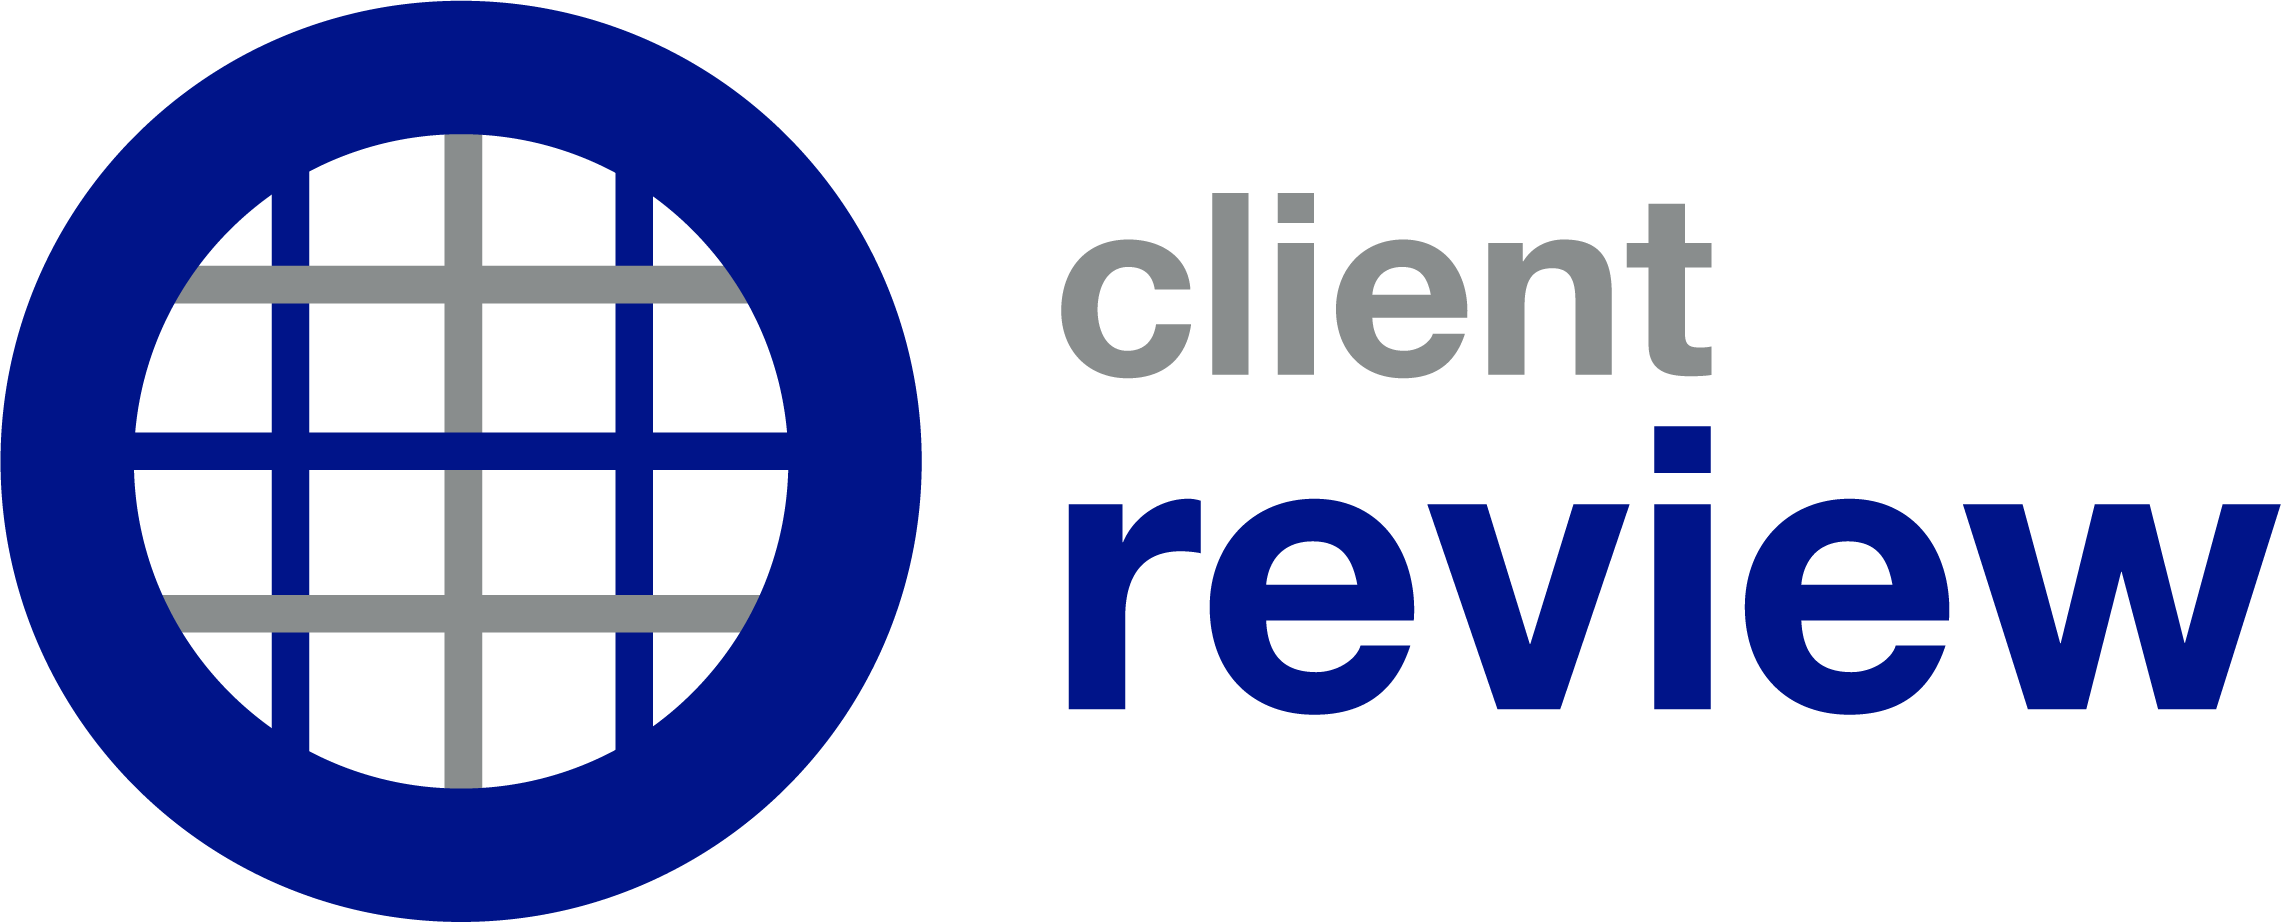 Client Review logo